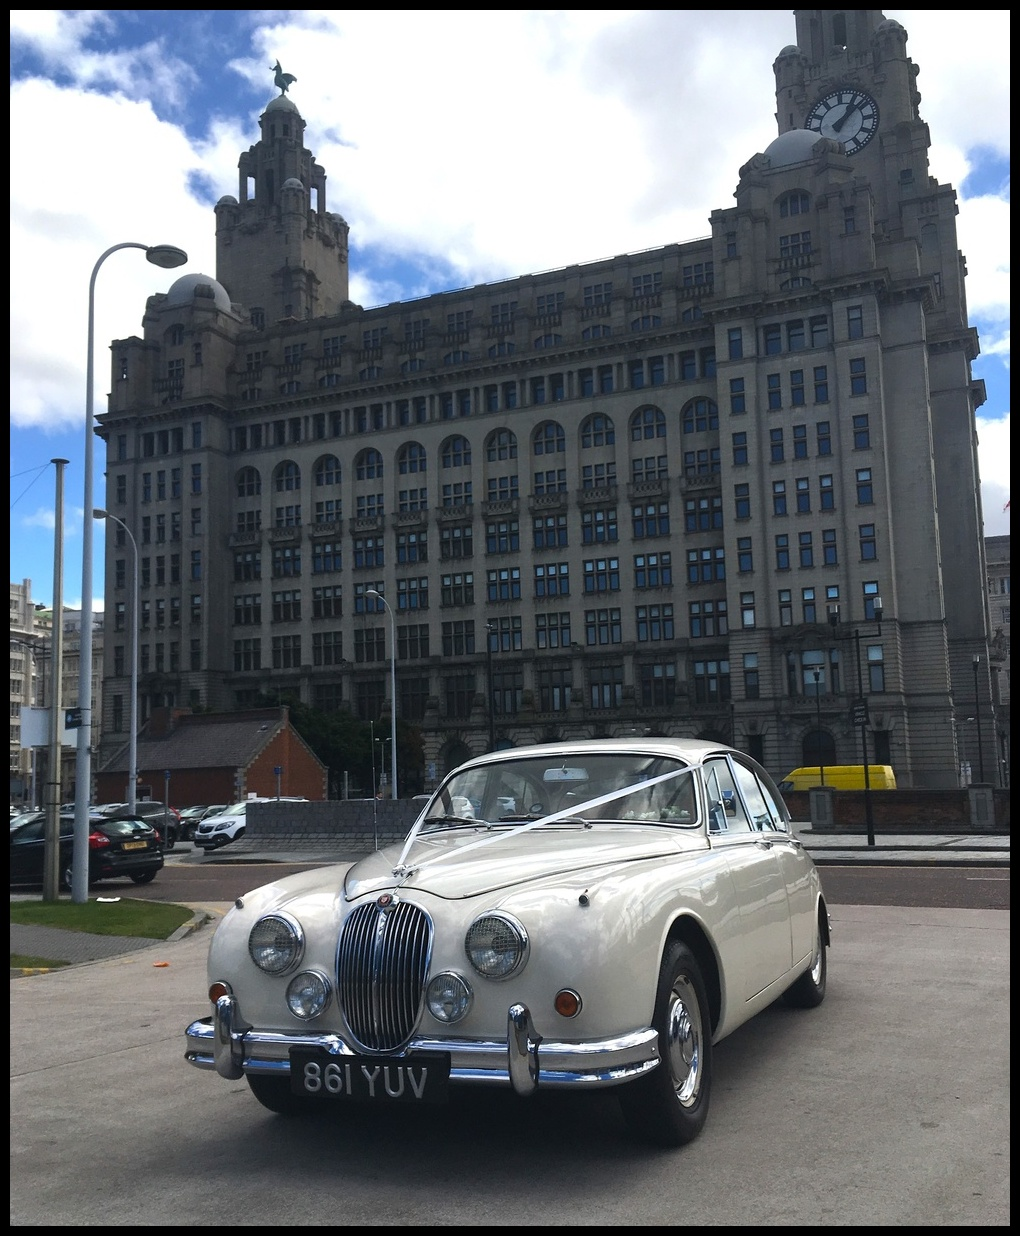 Altar Wedding Cars Manchester: Classic Wedding Cars Cheshire